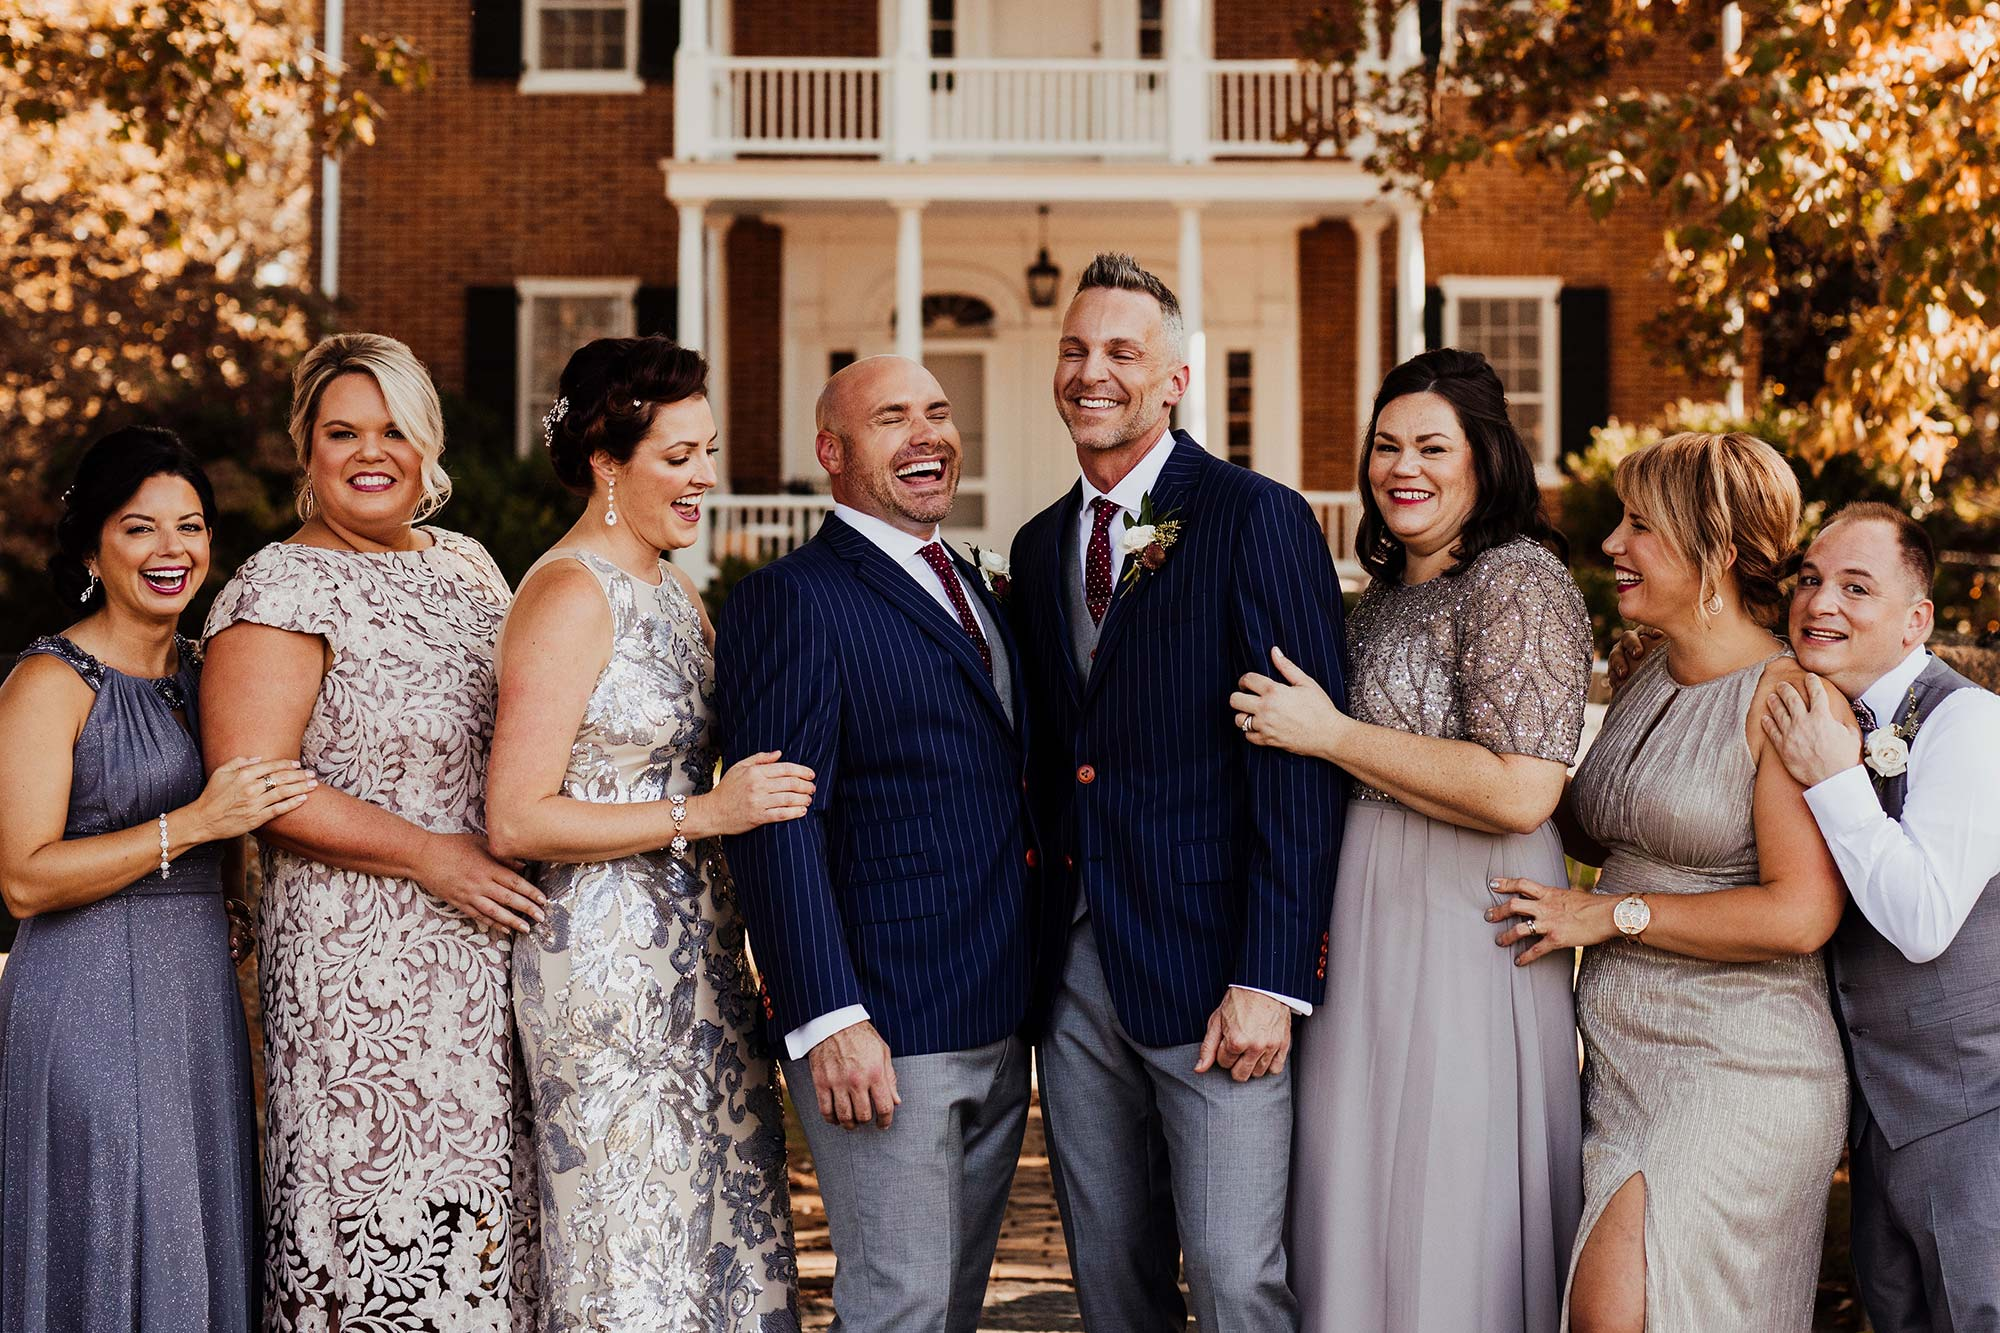 LGBTQ Louisville Kentucky Wedding at Hermitage Farm Crystal Ludwick Photo wedding party